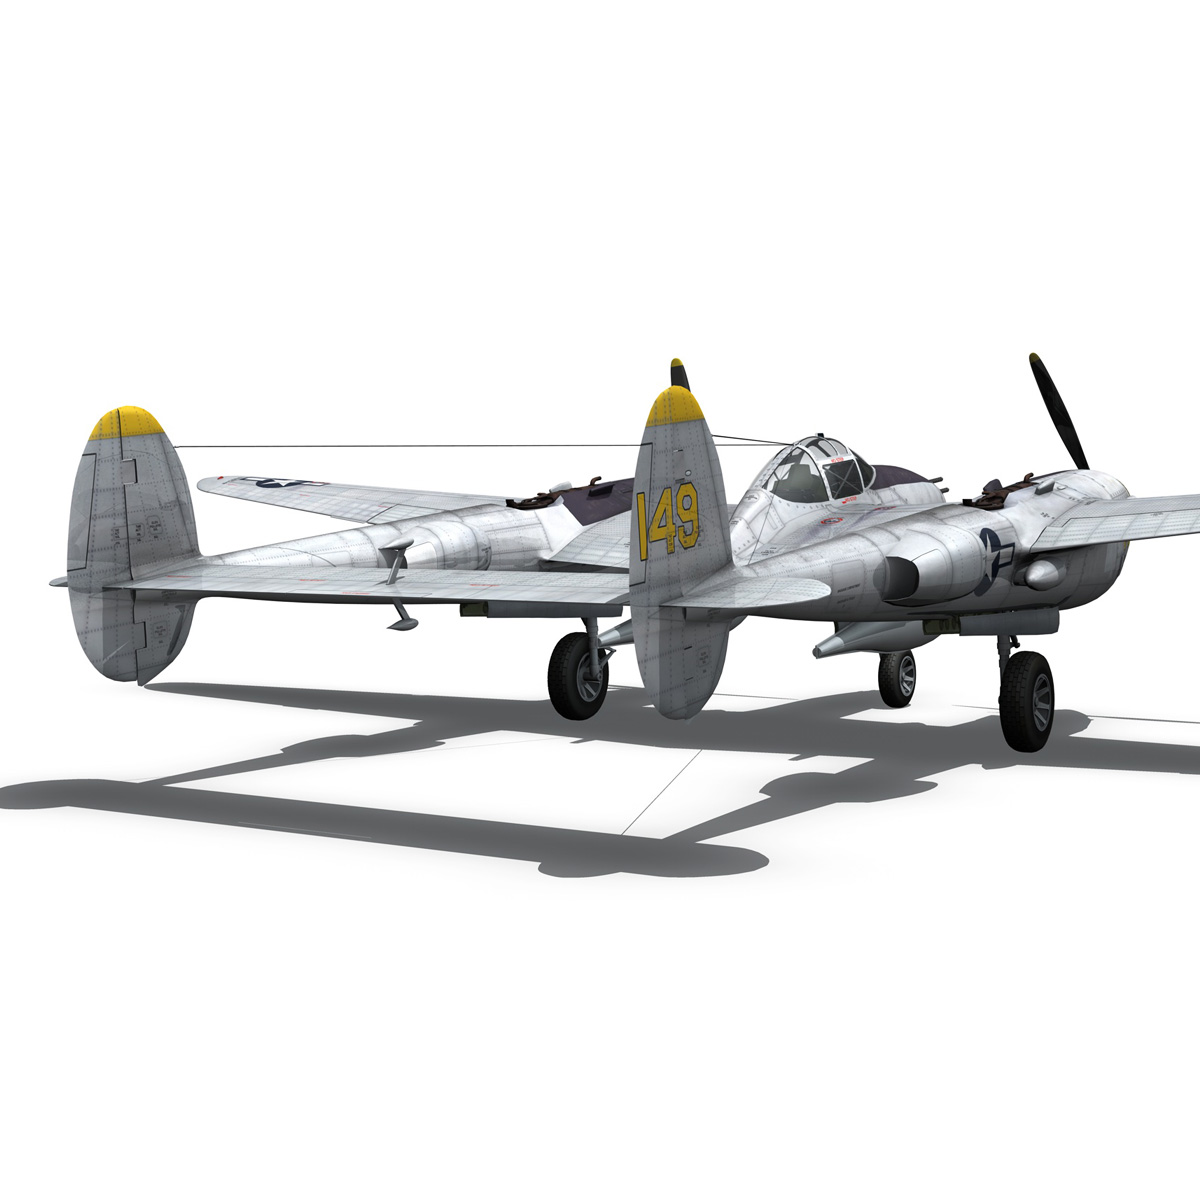 lockheed p-38 lightning – florida cracker 3d model fbx c4d lwo obj 279426